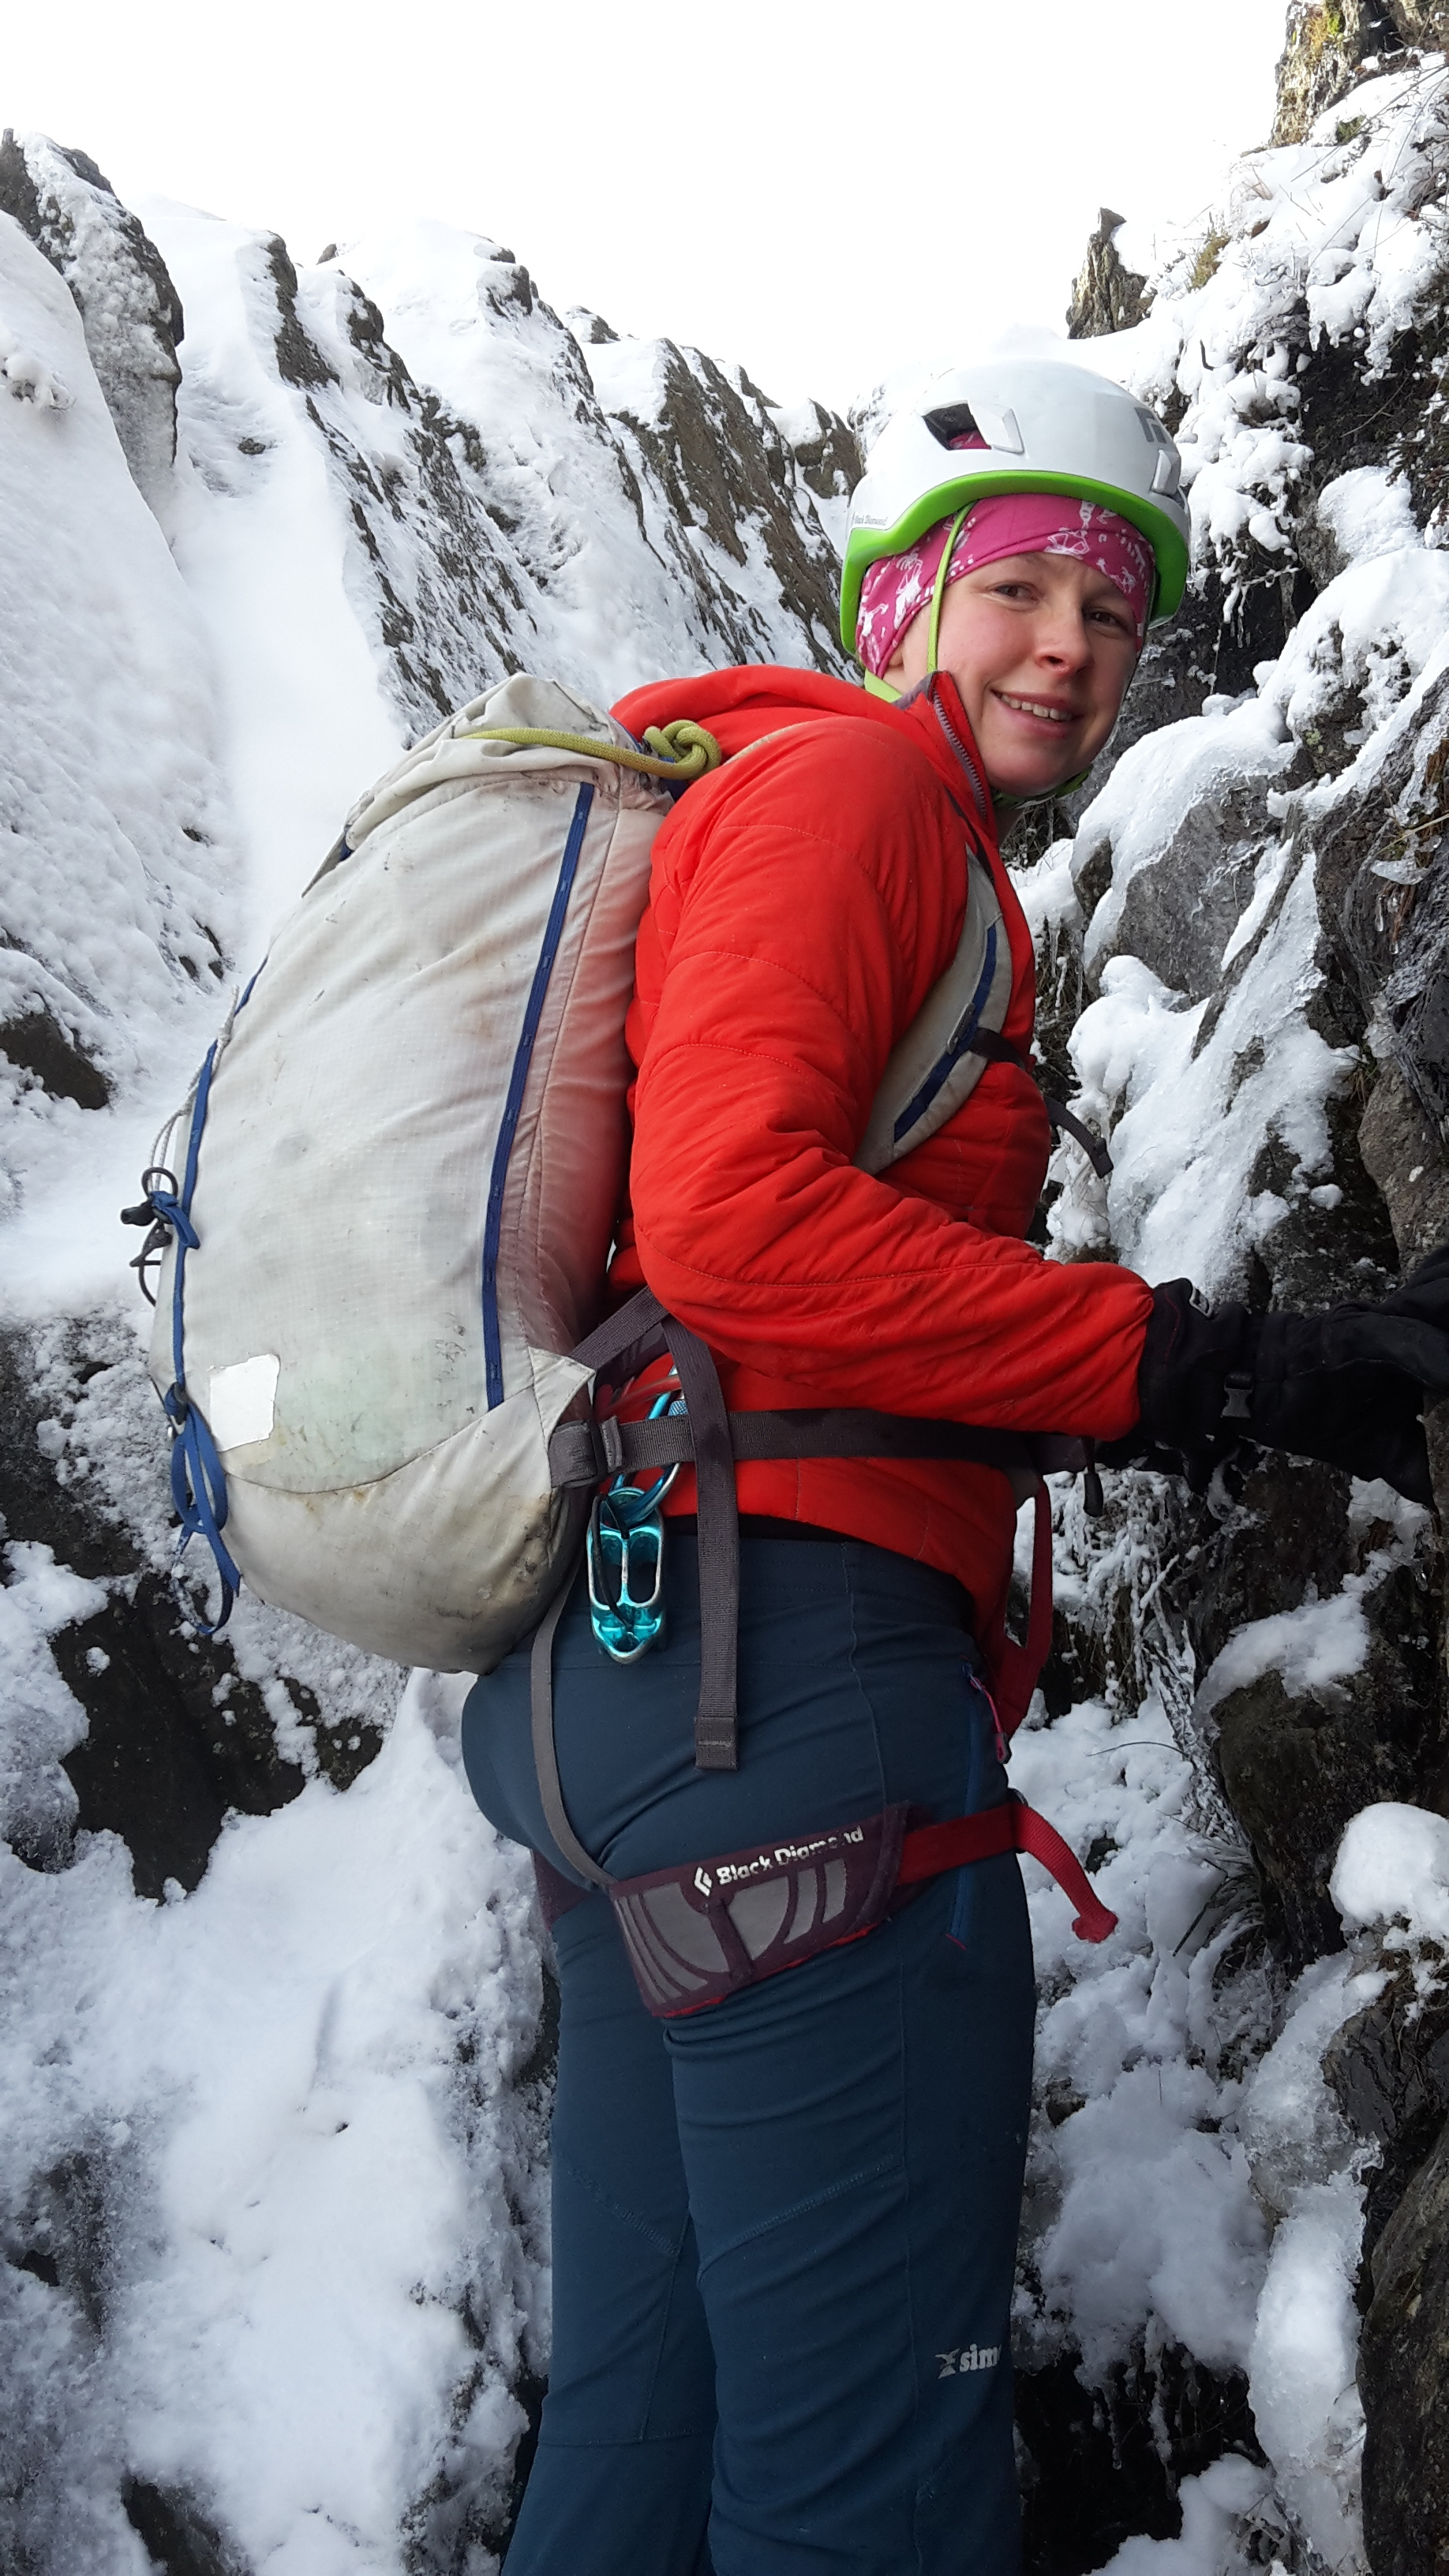 Lucy gets away with a lighter pack on long easy routes